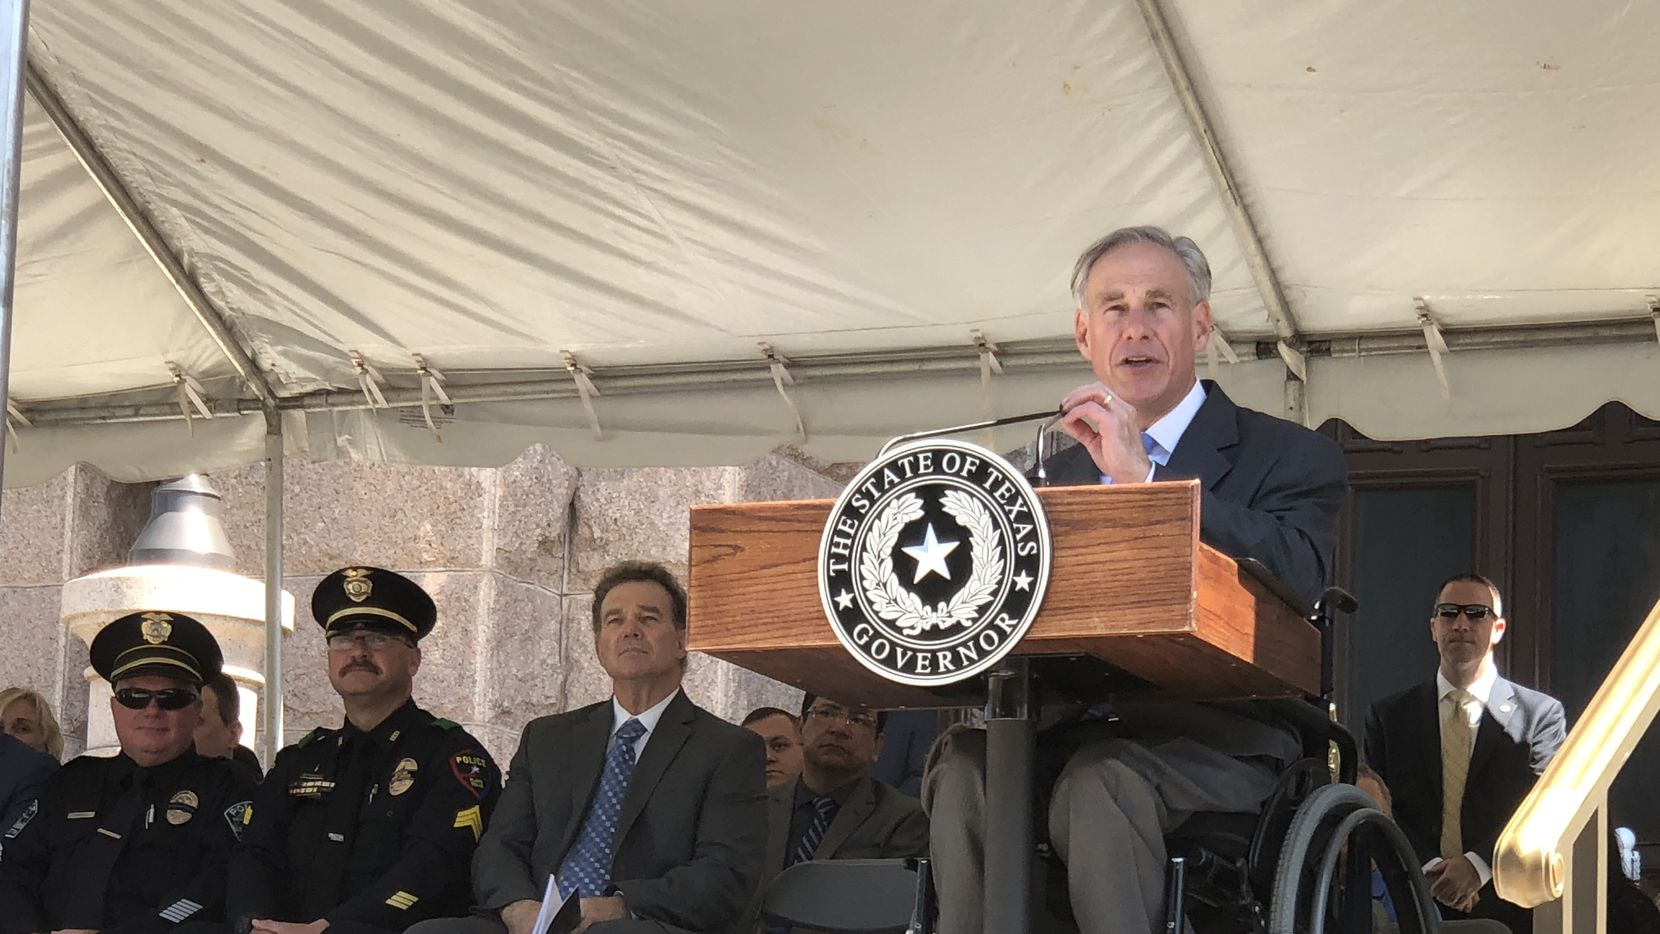 Gov. Greg Abbott gives the keynote address during the Texas Peace Officers' Memorial Service on Monday, May 7, 2018, in Austin, Texas.